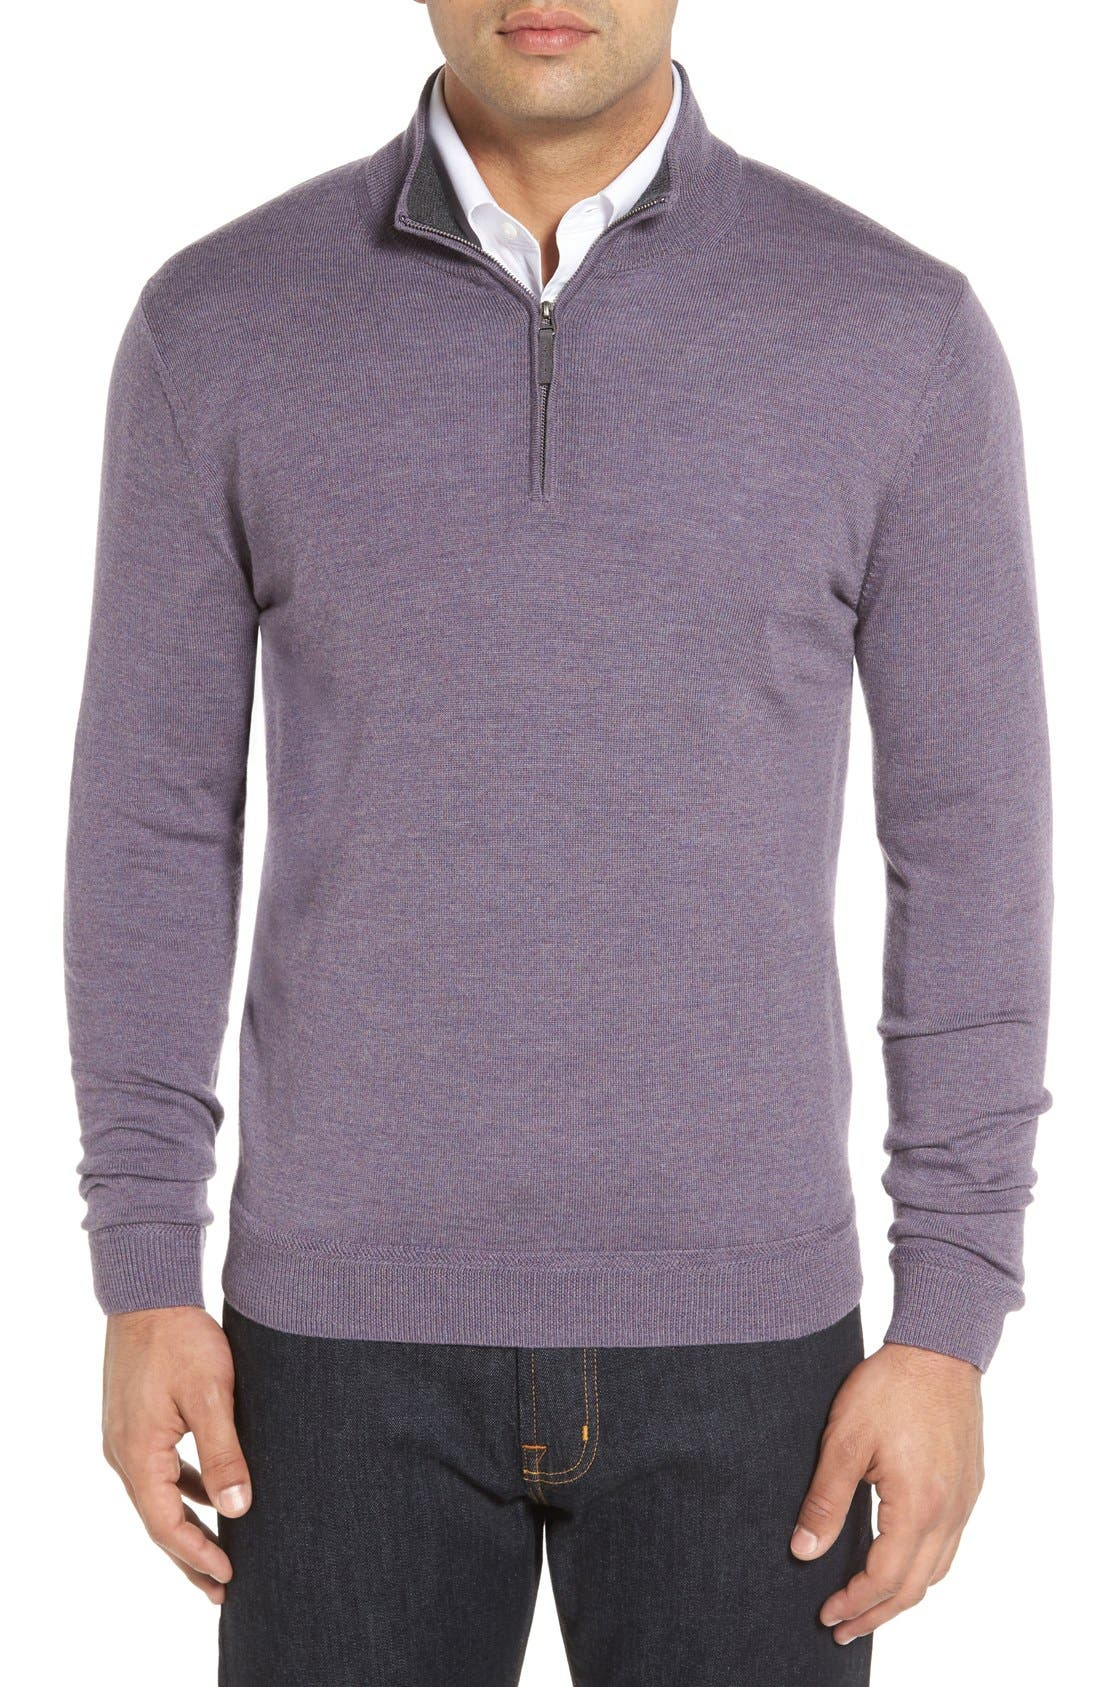 Alternate Image 1 Selected - John W. Nordstrom® Merino Wool Quarter Zip Sweater